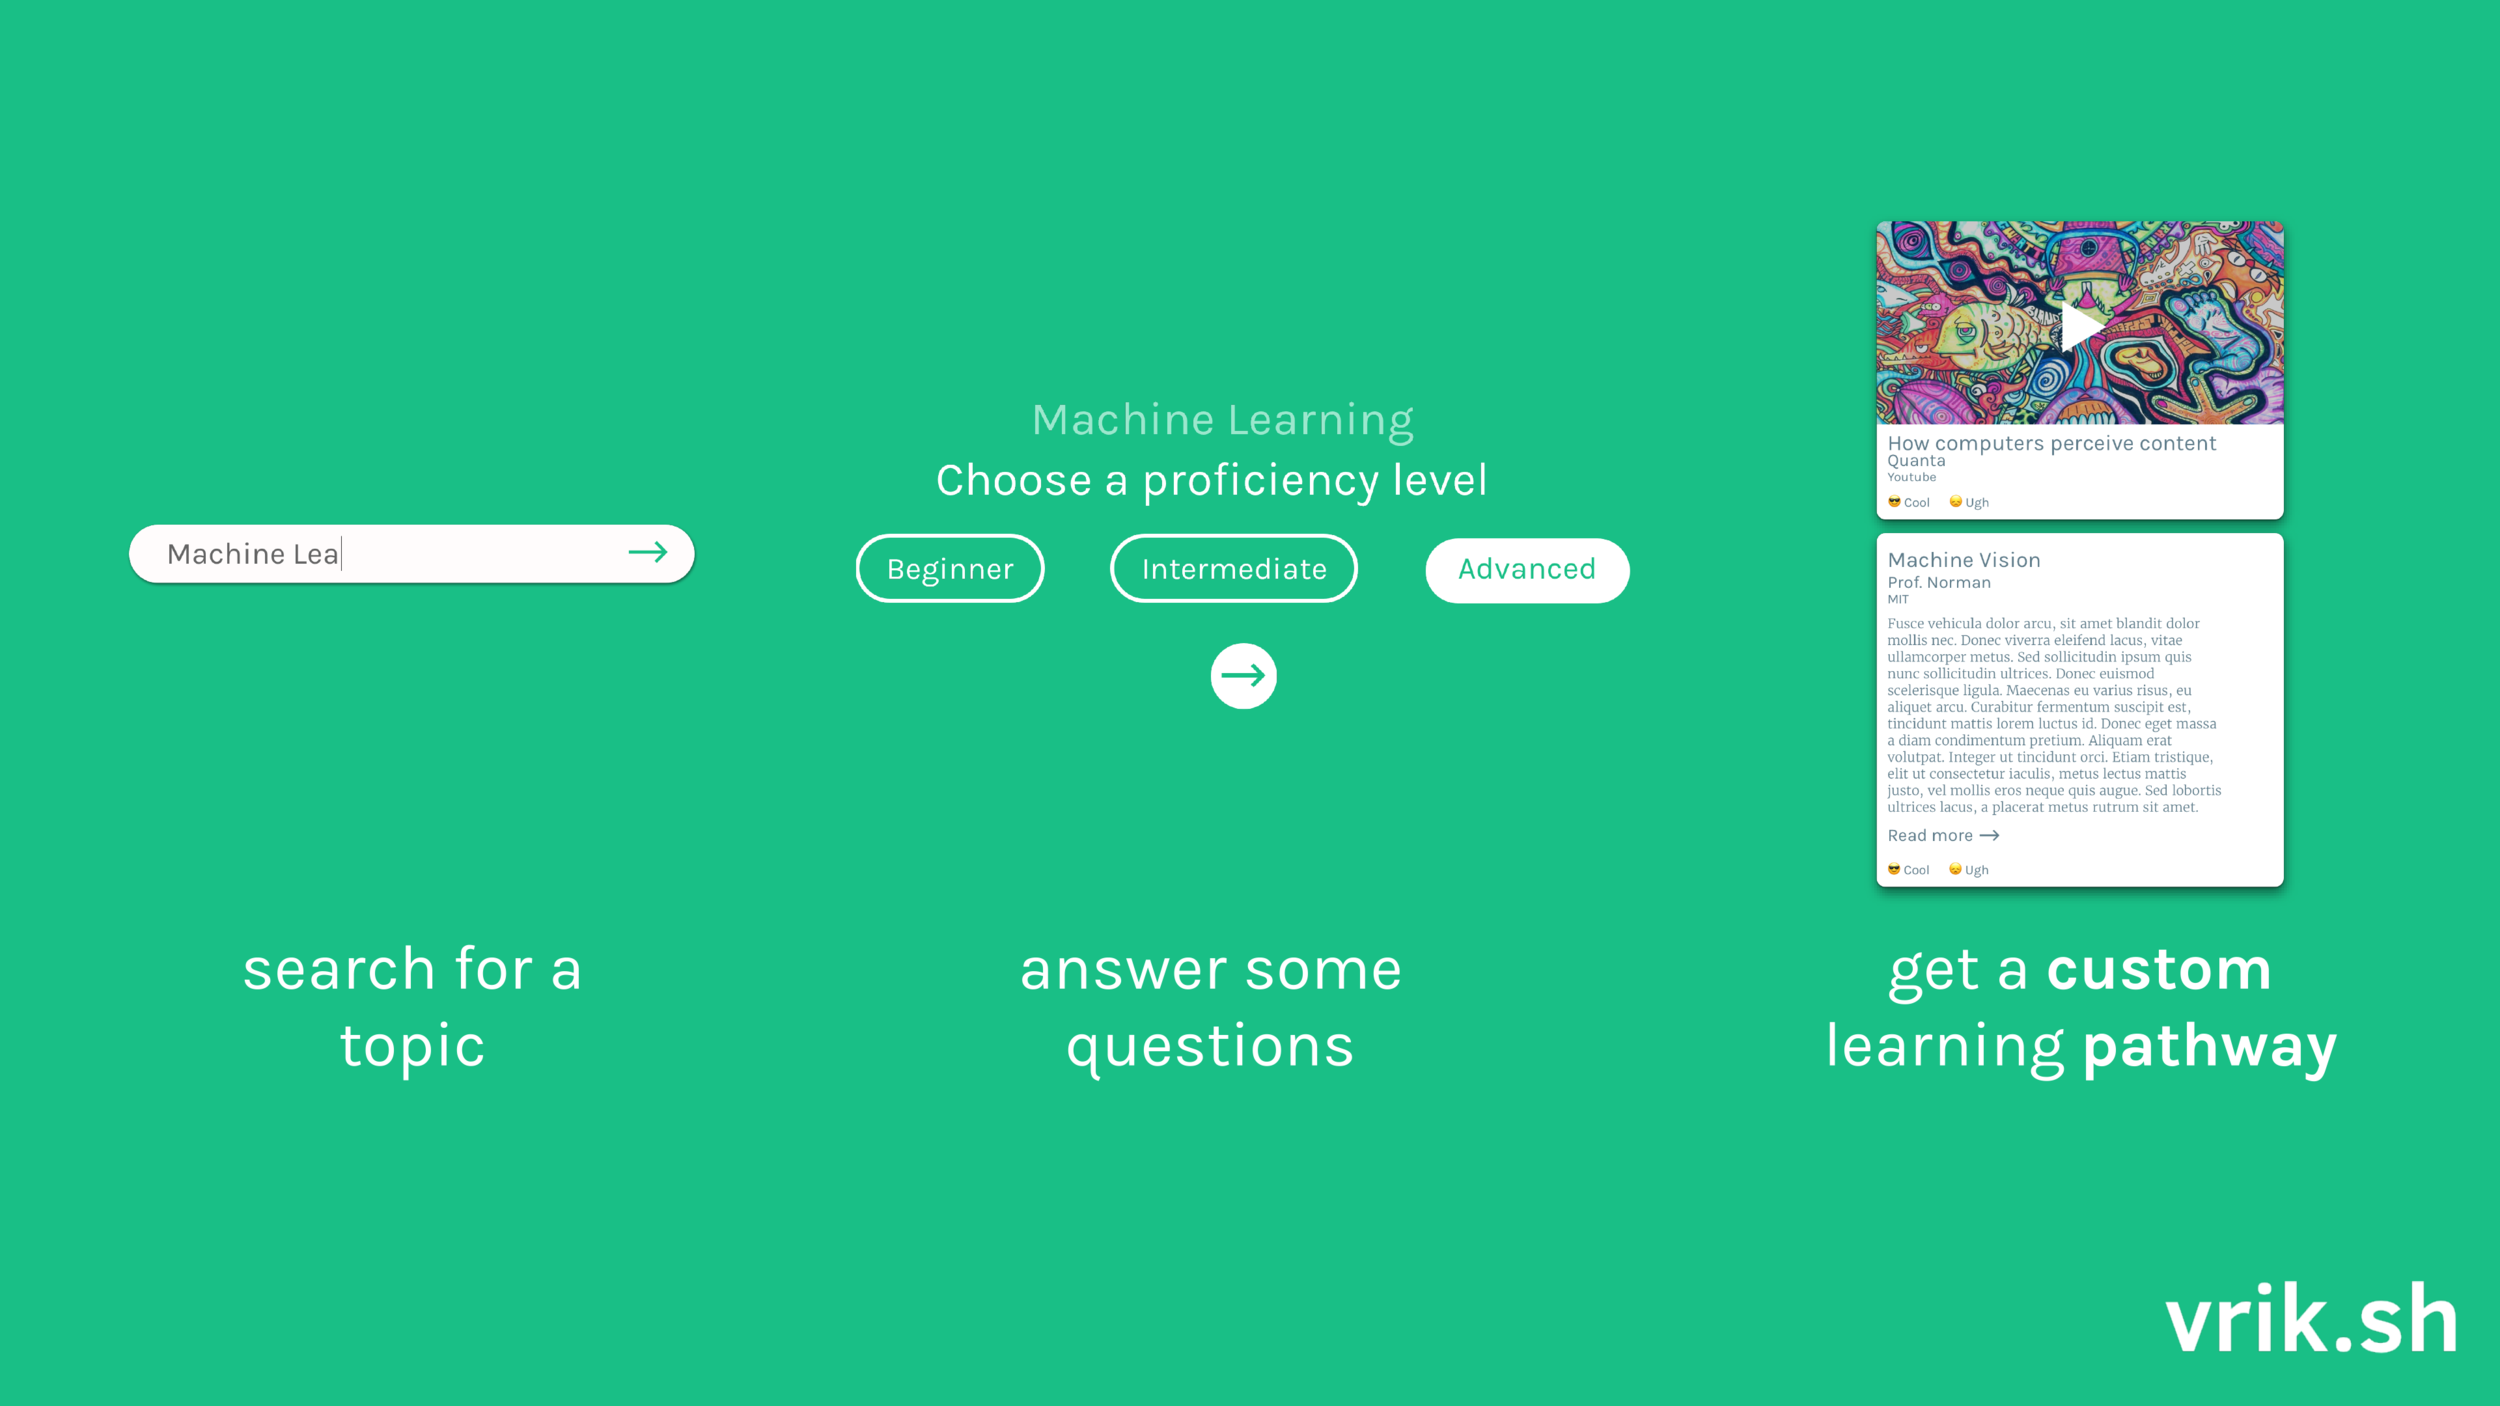 As simple as 1-2-3 - We wanted to offer a simple 3 step flow. The user queries for a topic, answers a set of questions about their learning profile, and gets served a custom learning pathway.